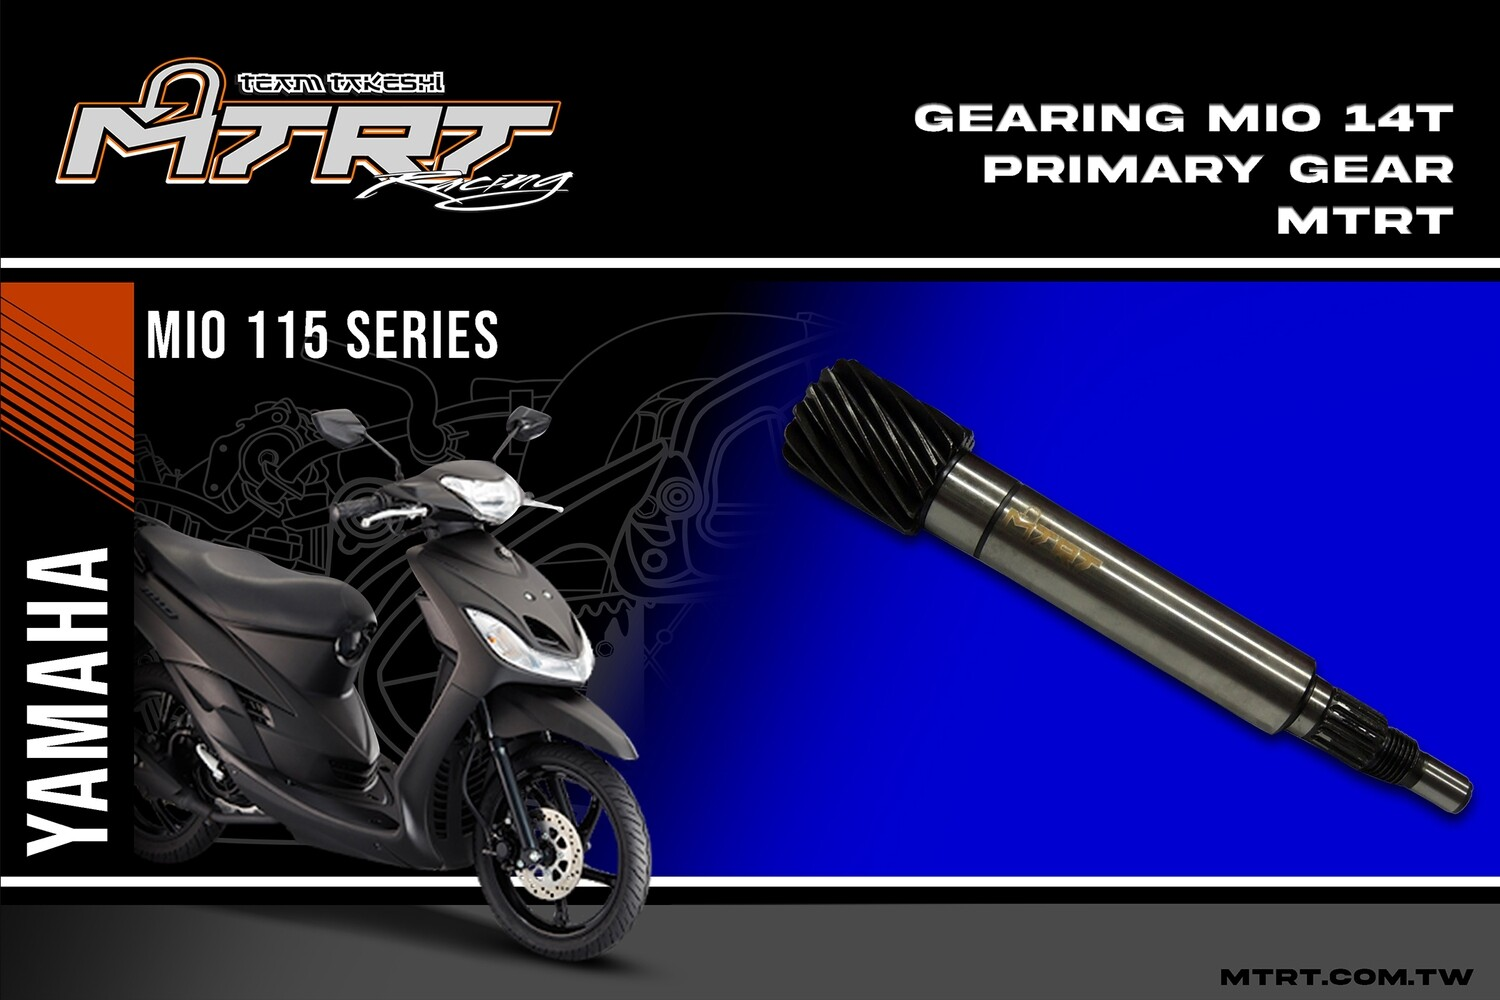 GEARING  MIO  14T Primary Gear MTRT